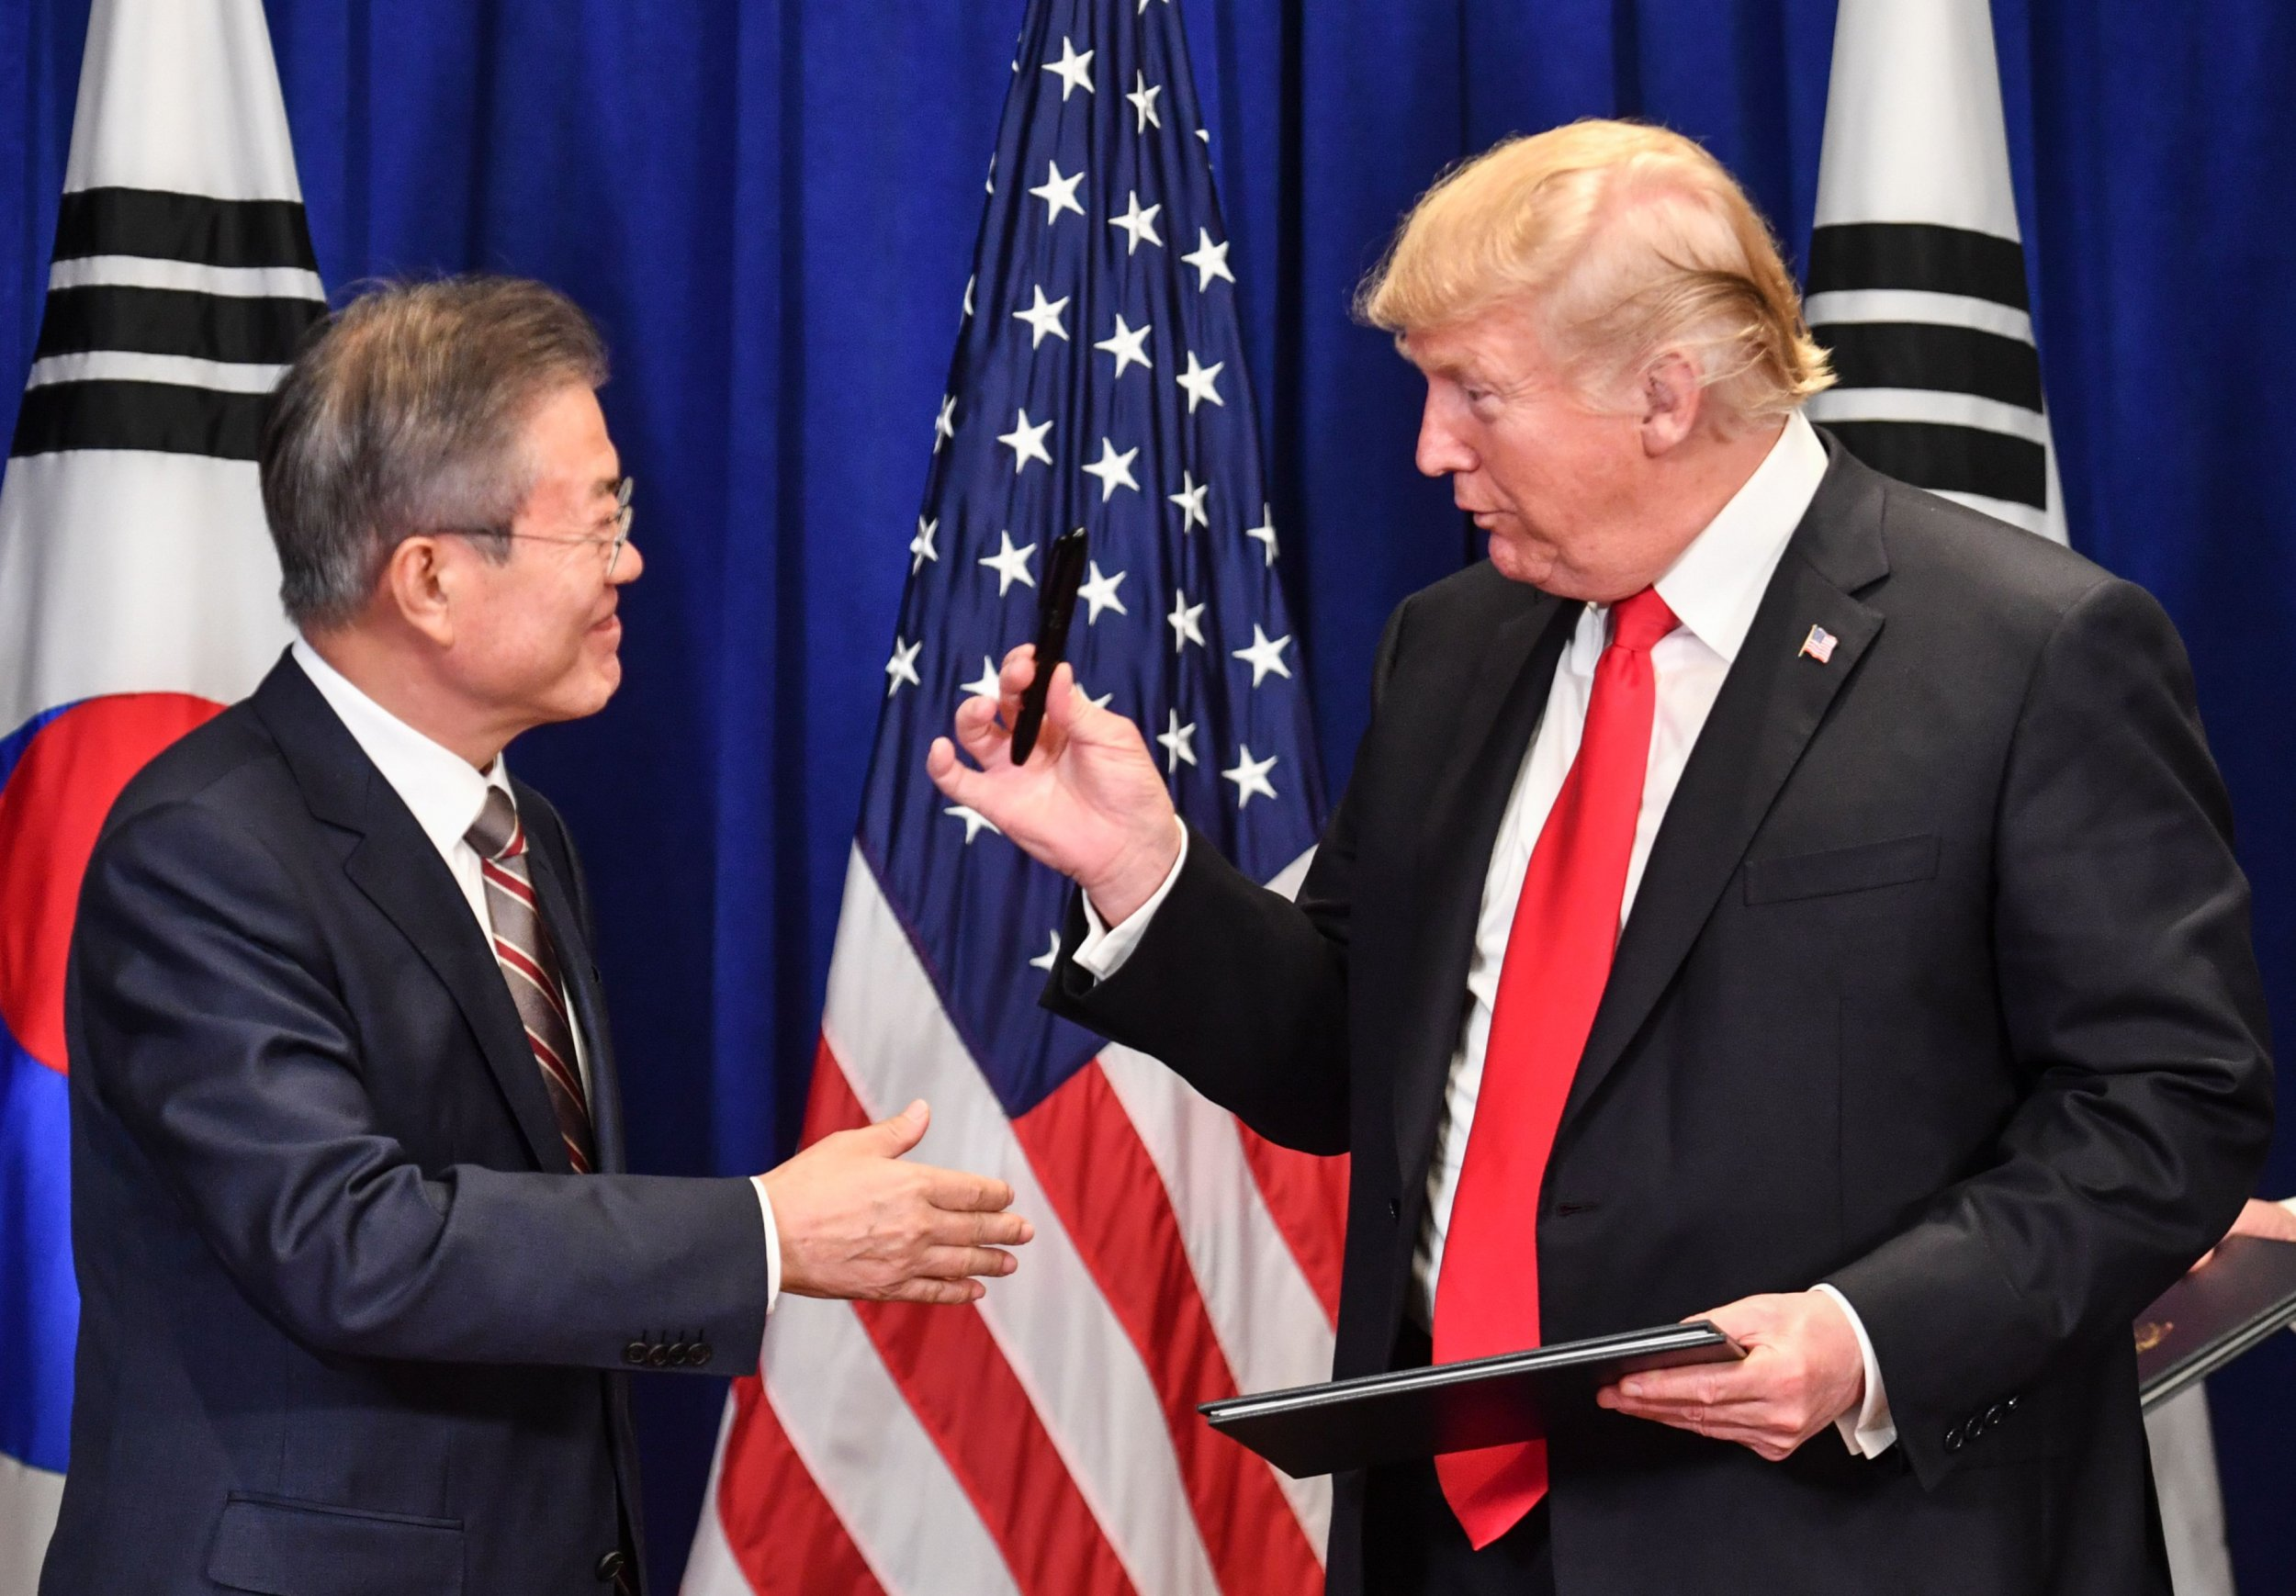 Donald Trump says South Korea does